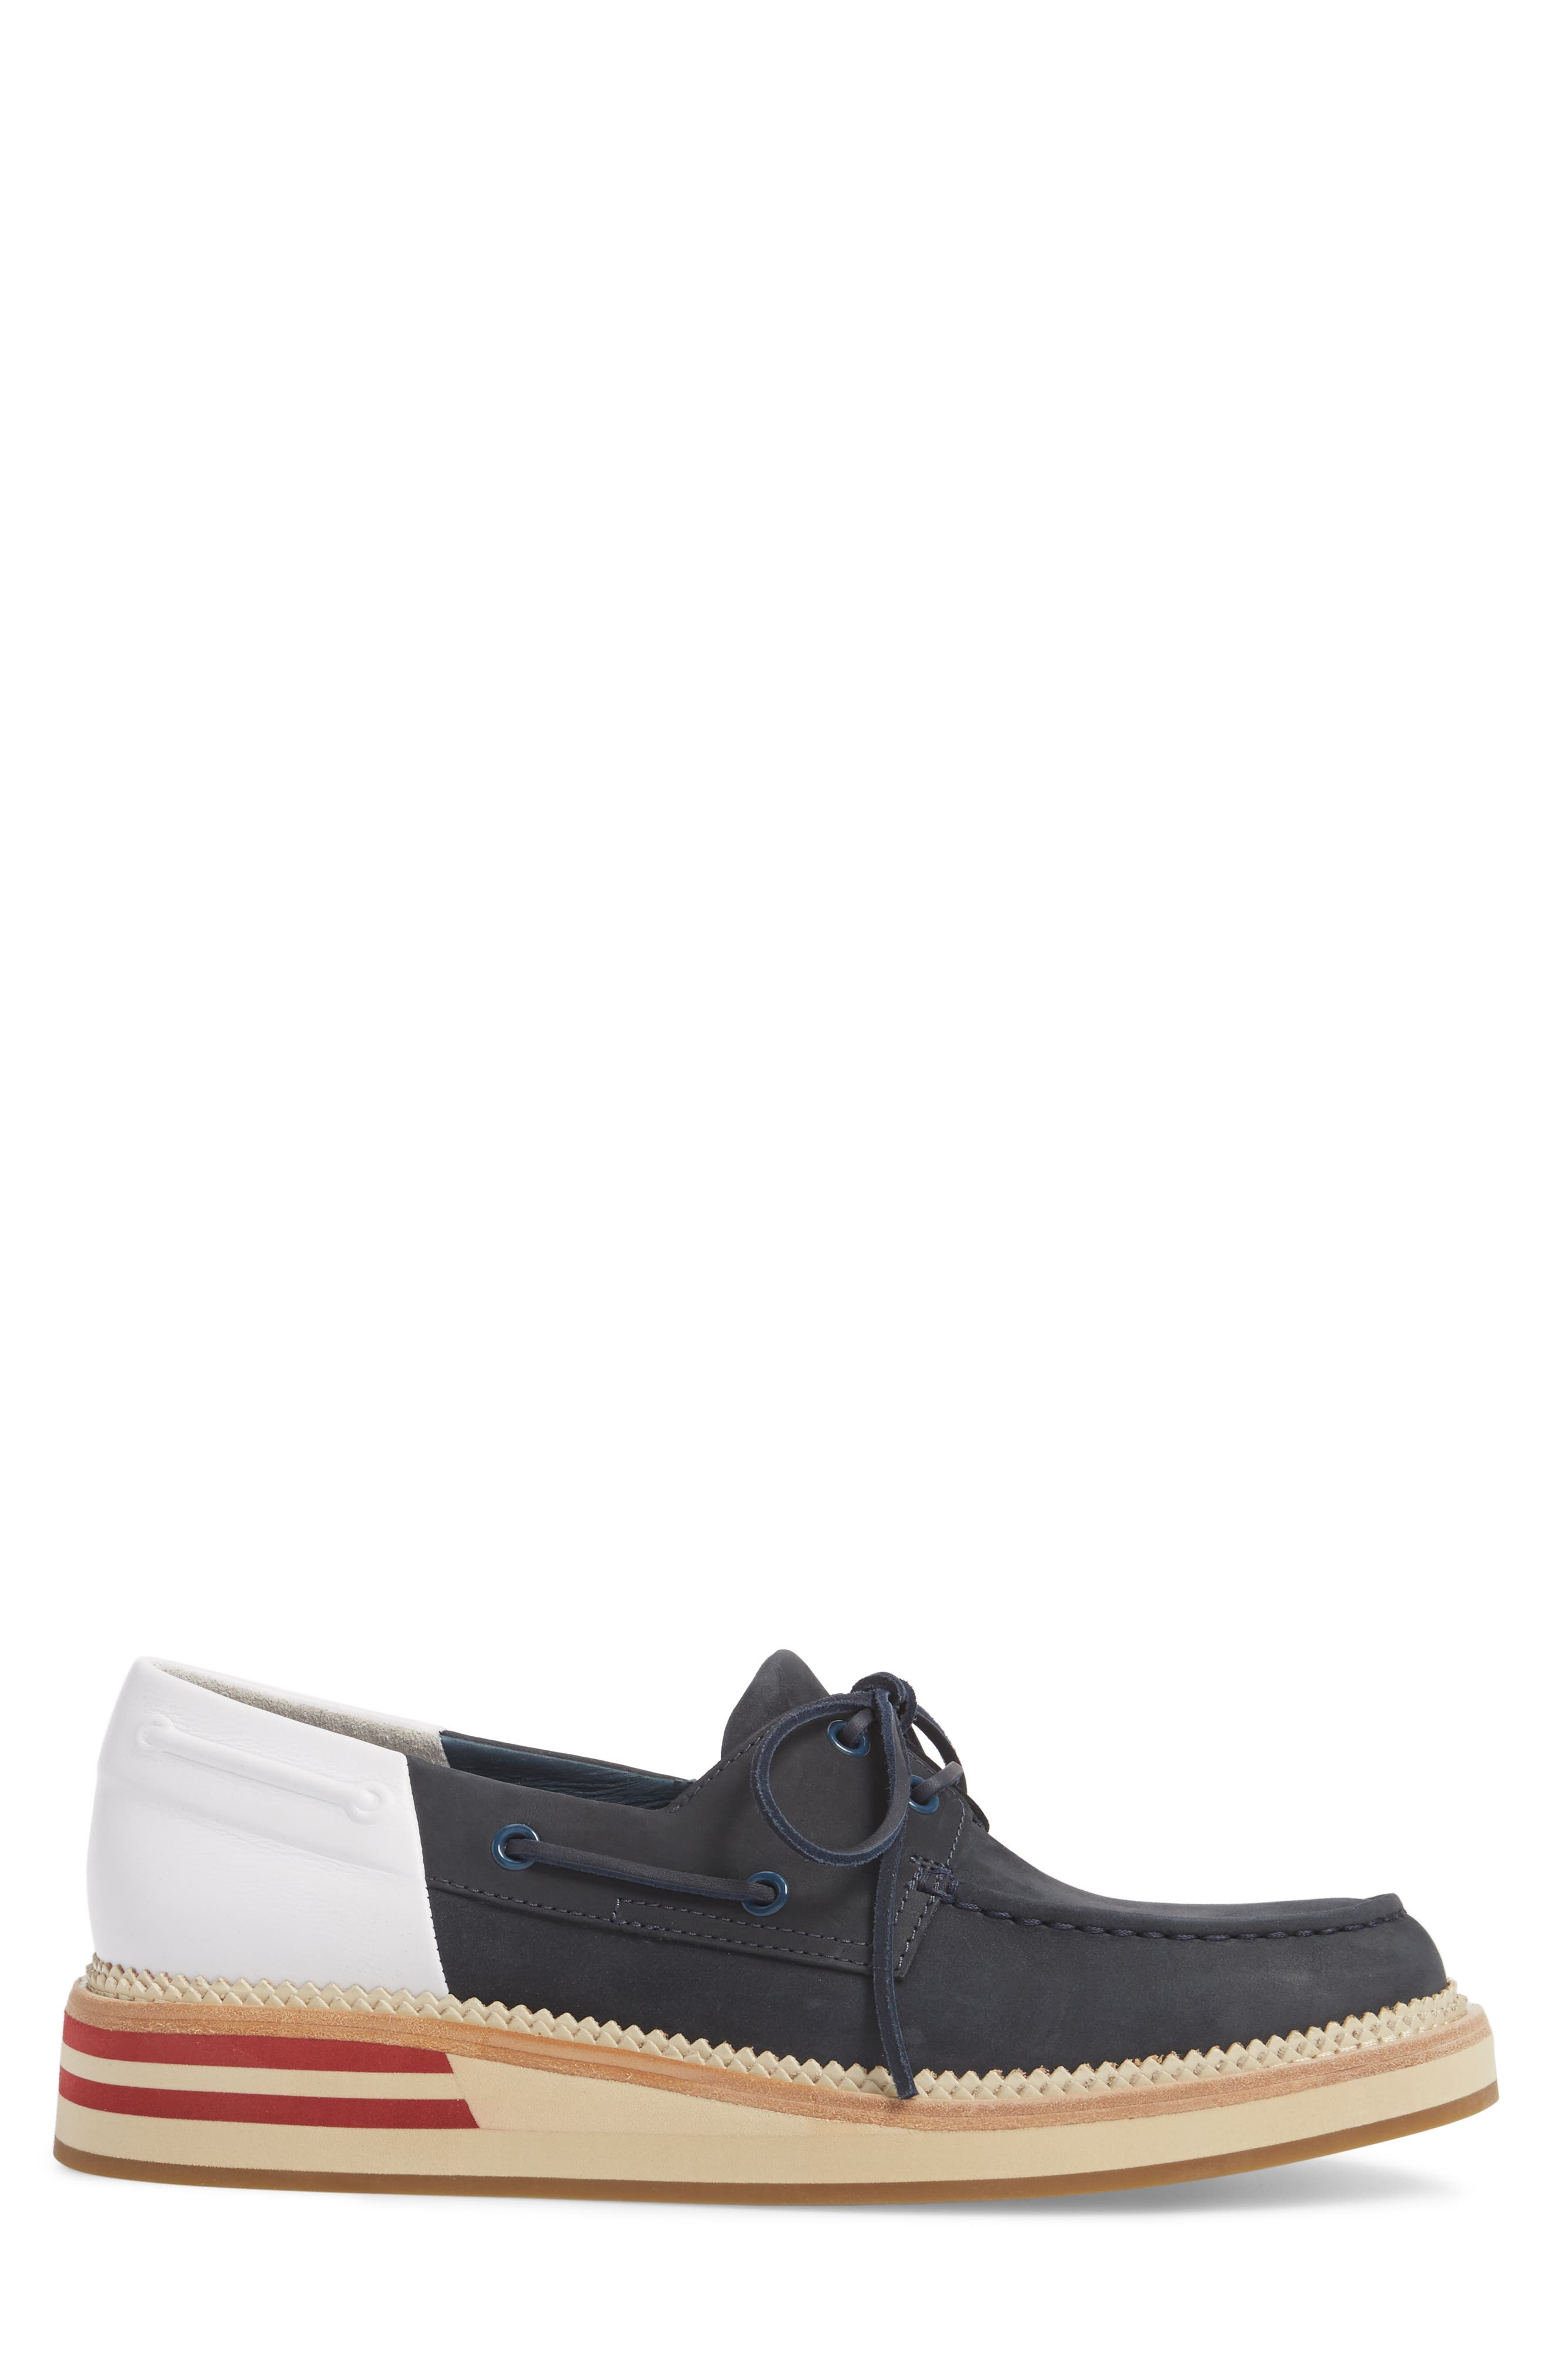 Cloud Colorblocked Boat Shoe,                             Alternate thumbnail 3, color,                             Navy/ White